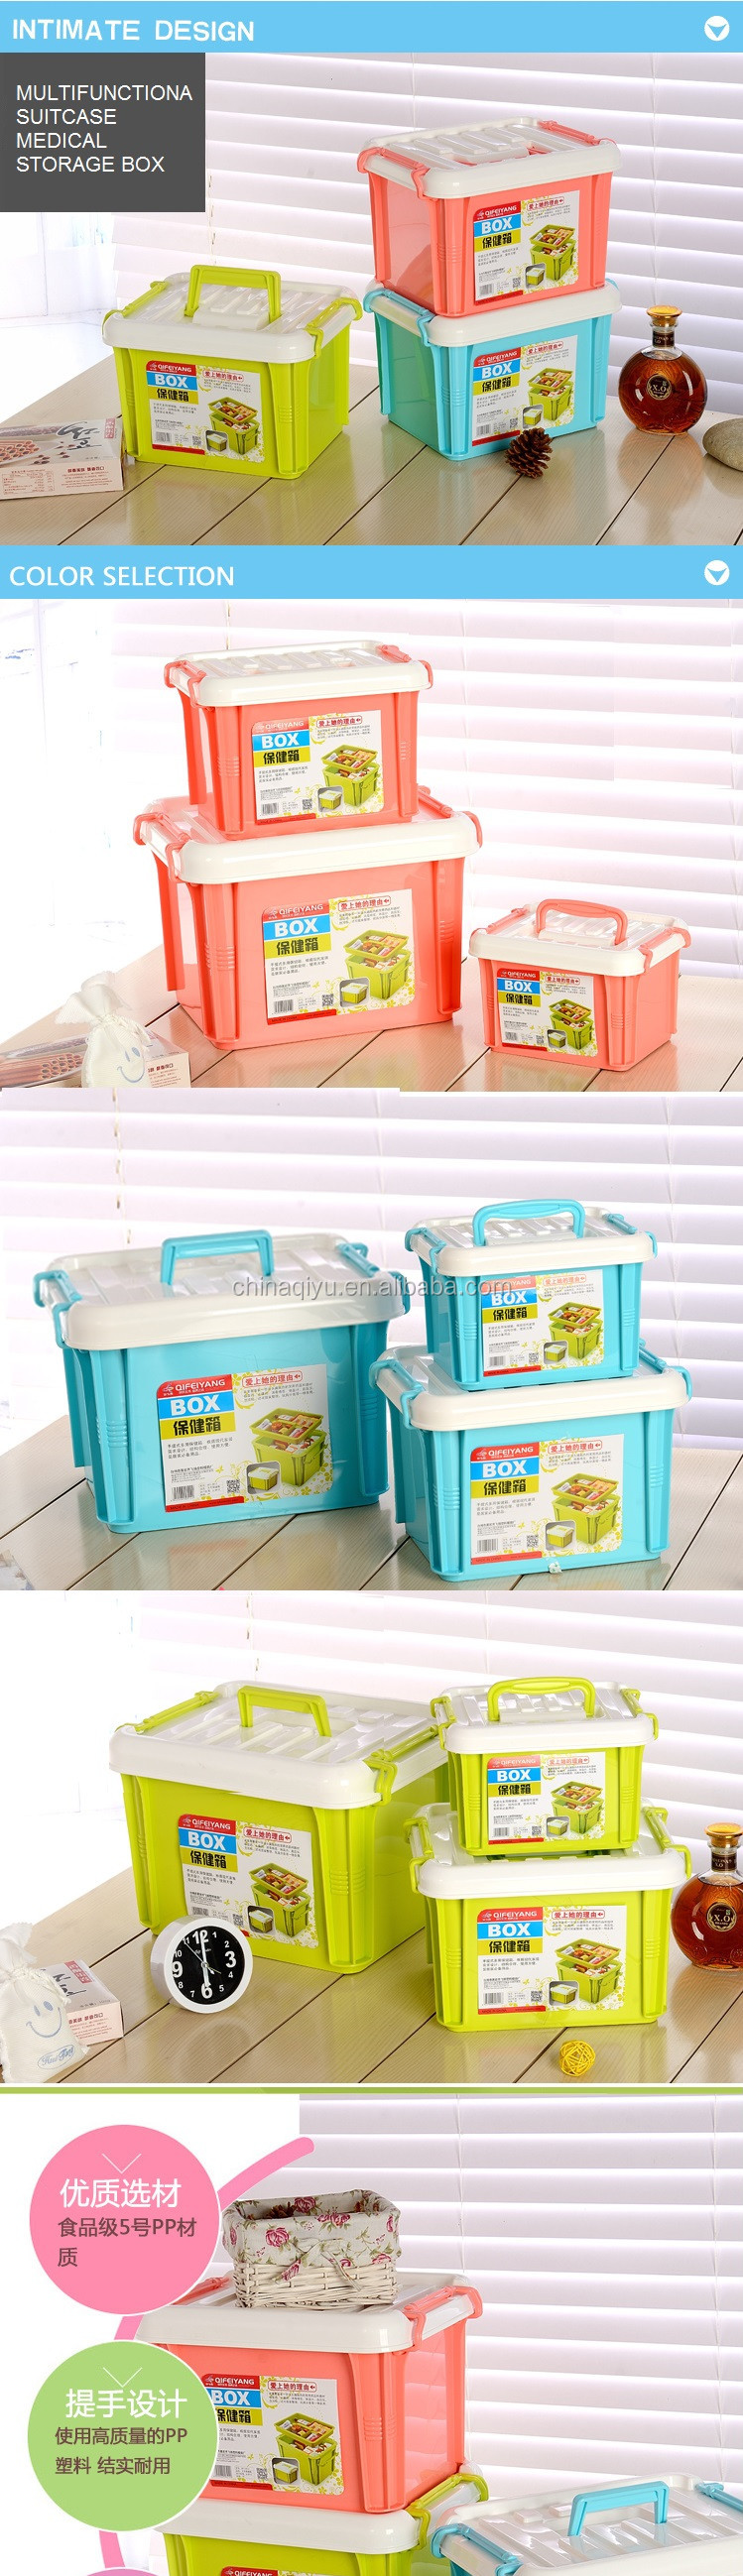 Plastic Storage box Medical boxes Sewing storage boxes  sc 1 st  Alibaba & Plastic Storage Box Medical Boxes Sewing Storage Boxes - Buy Plastic ...